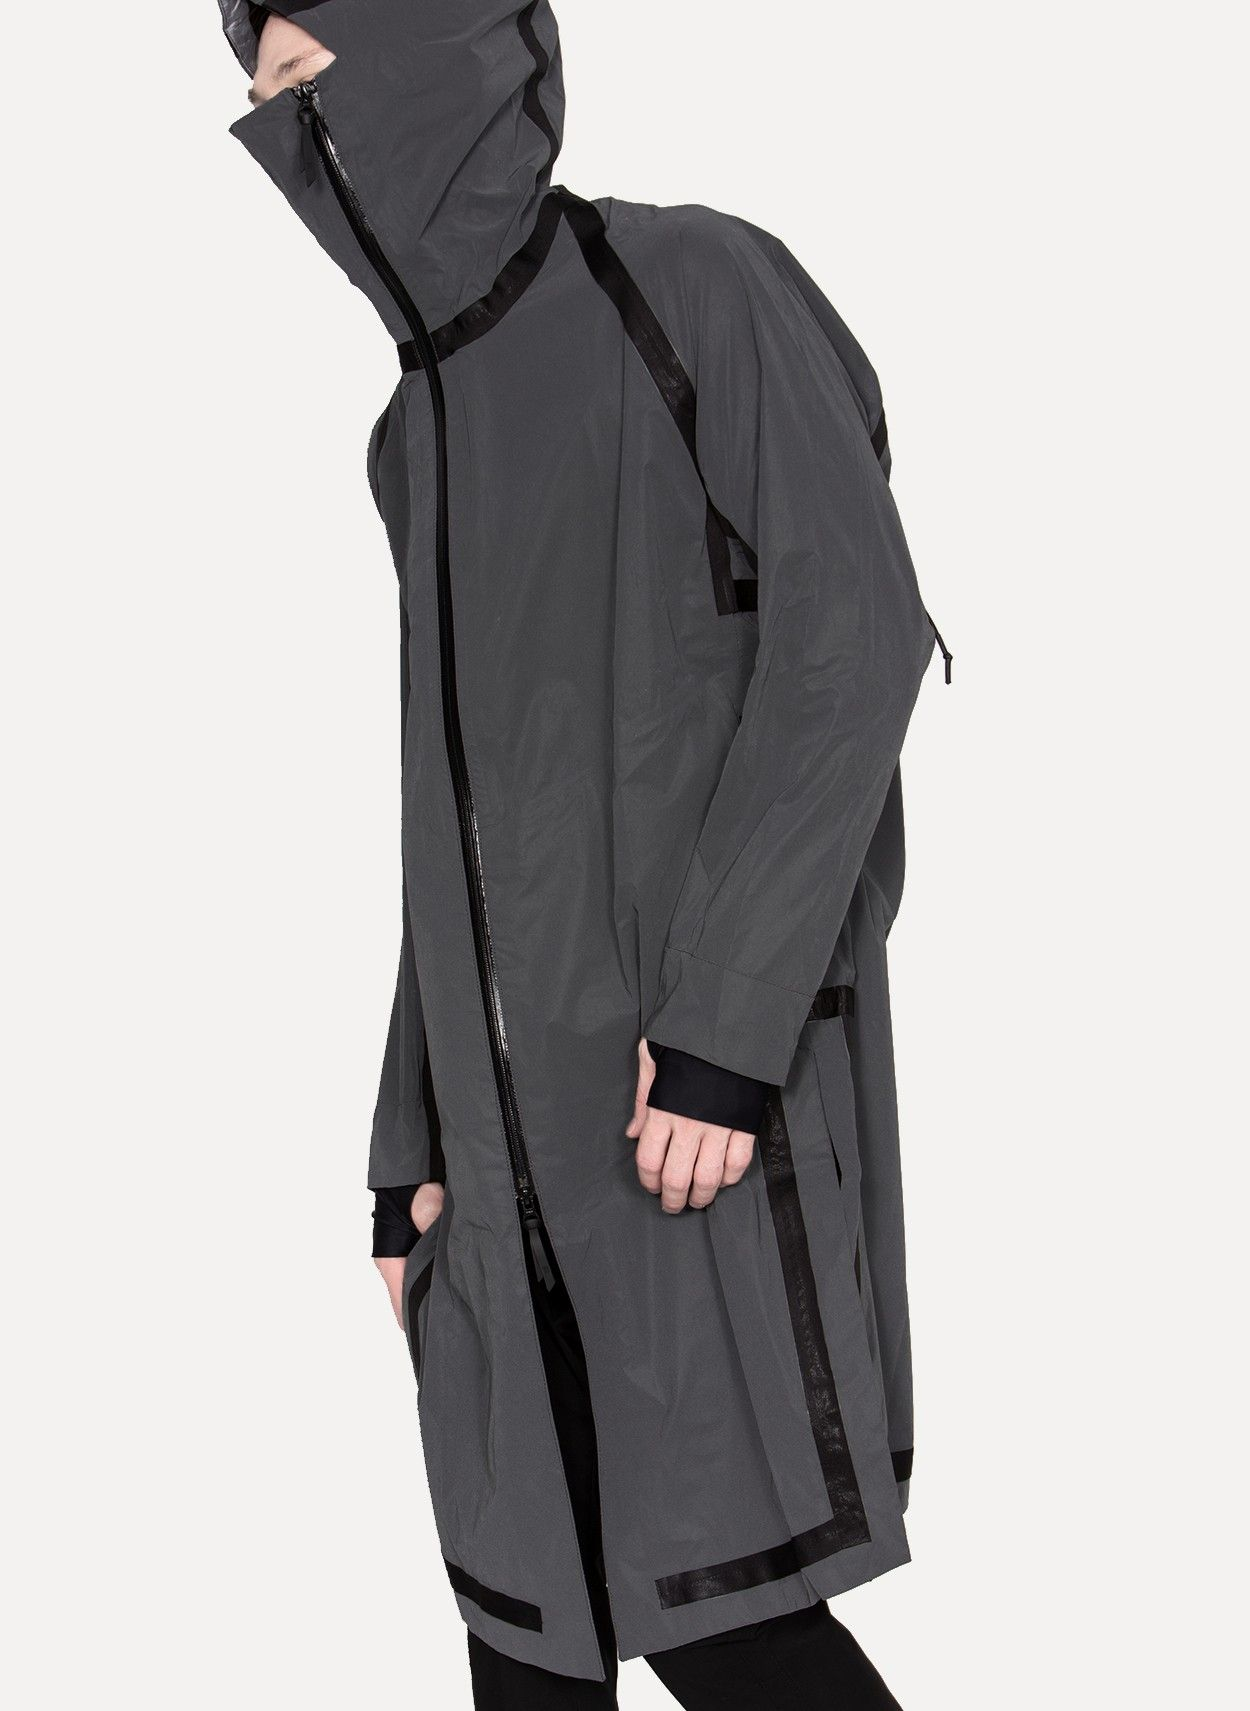 11 by Boris Bidjan Saberi R2 1310 Reflective Trench Coat https://cruvoir.